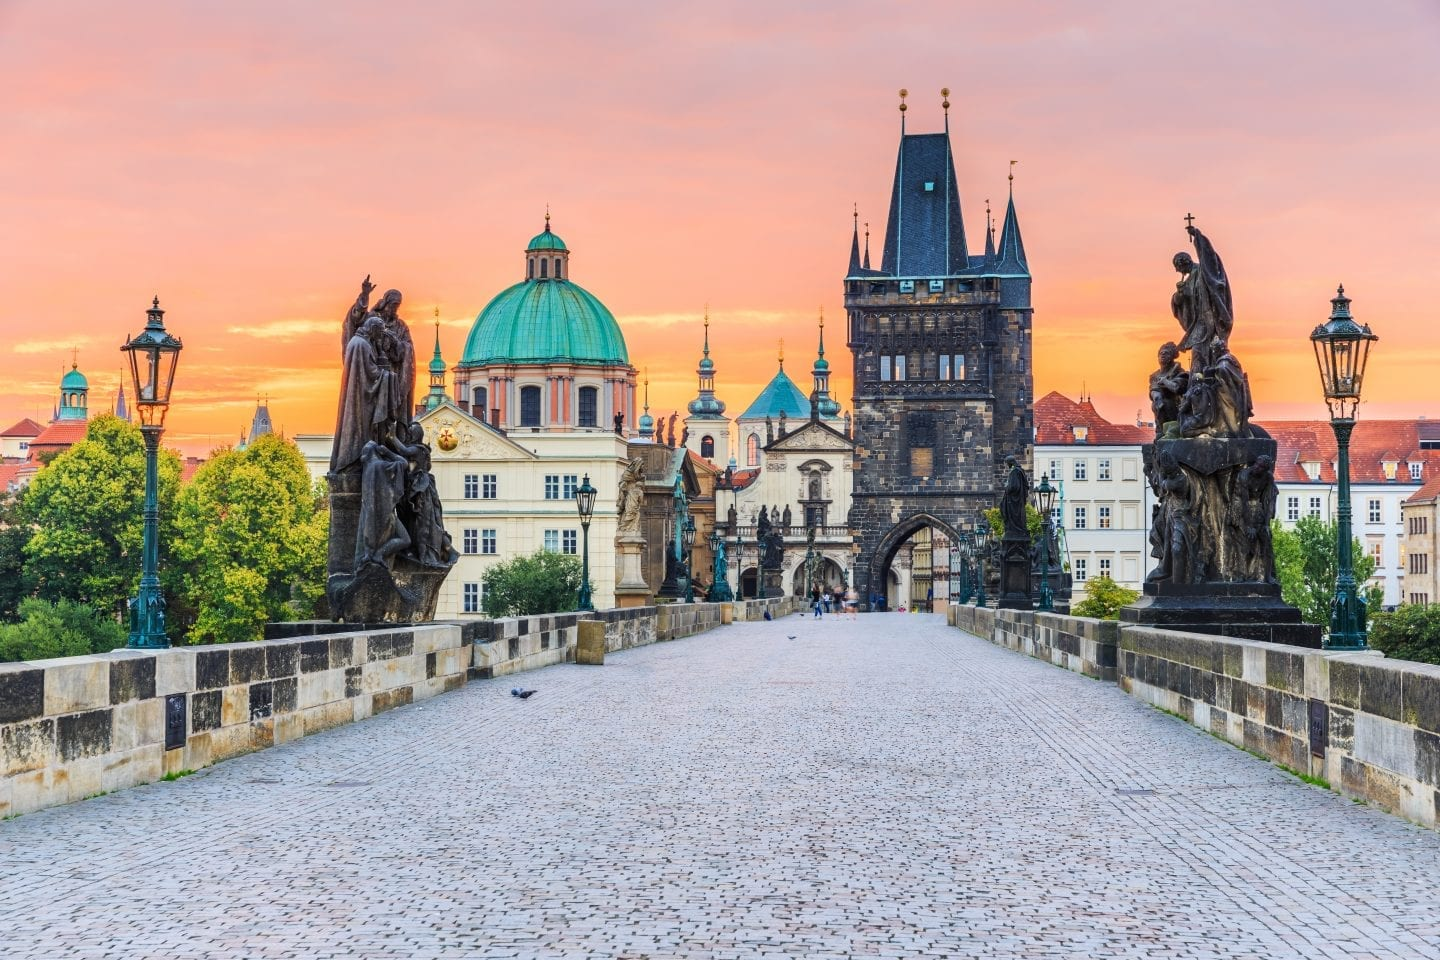 European bucket list destination in Prague: Charles Bridge and Old Town